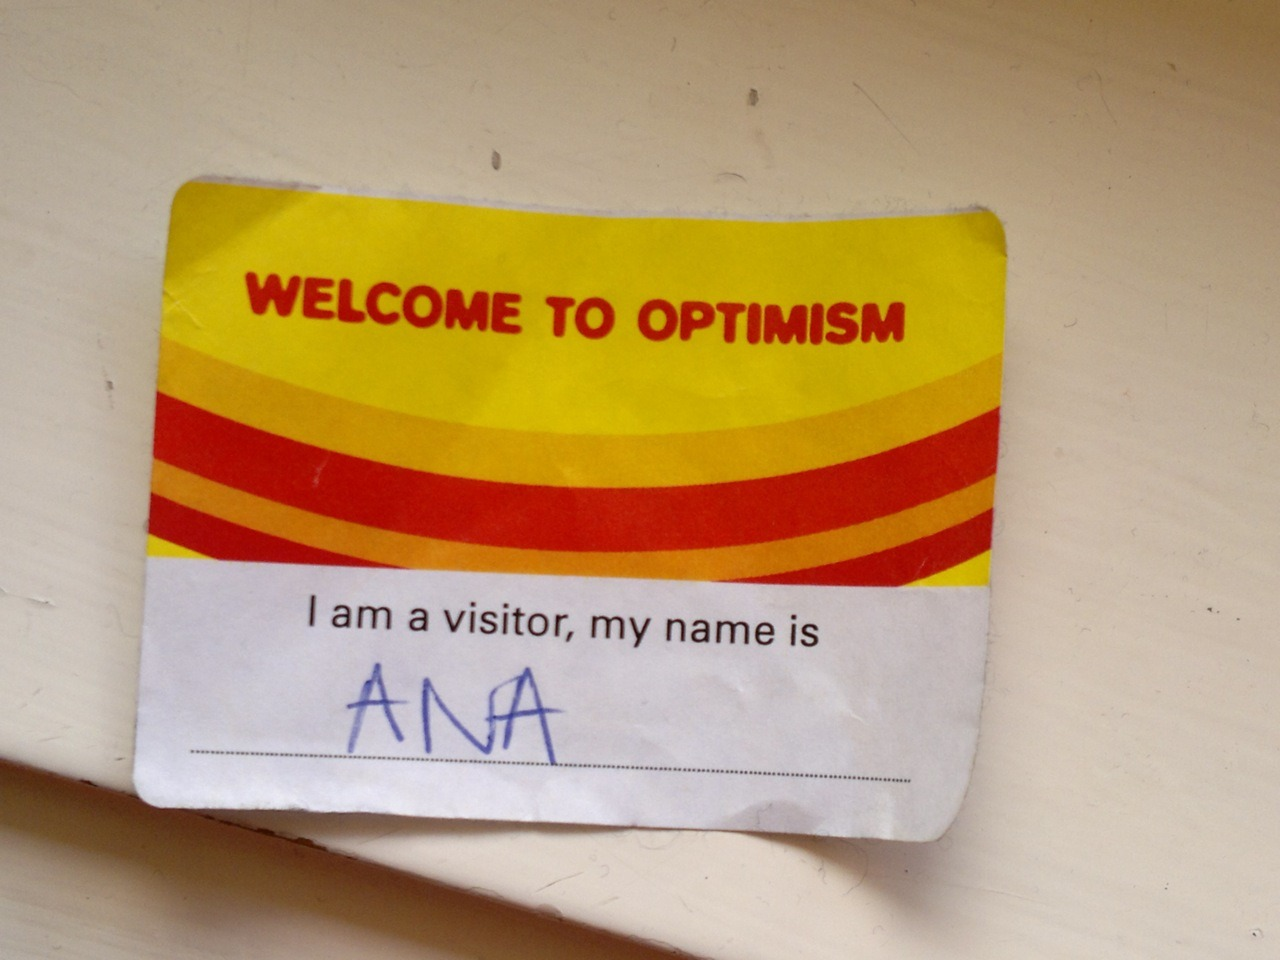 Just found my @W2Optimism name tag from my #HyperIsland interview at @WiedenKennedy London two years ago! In January 2010 I had my recruitment day for Hyper Island at the Wieden Kennedy offices in London, and we had to write our name on a sticker and wear it the whole day. Can't believe it's almost two years since I got accepted to this amazing school, and where a great new journey started.